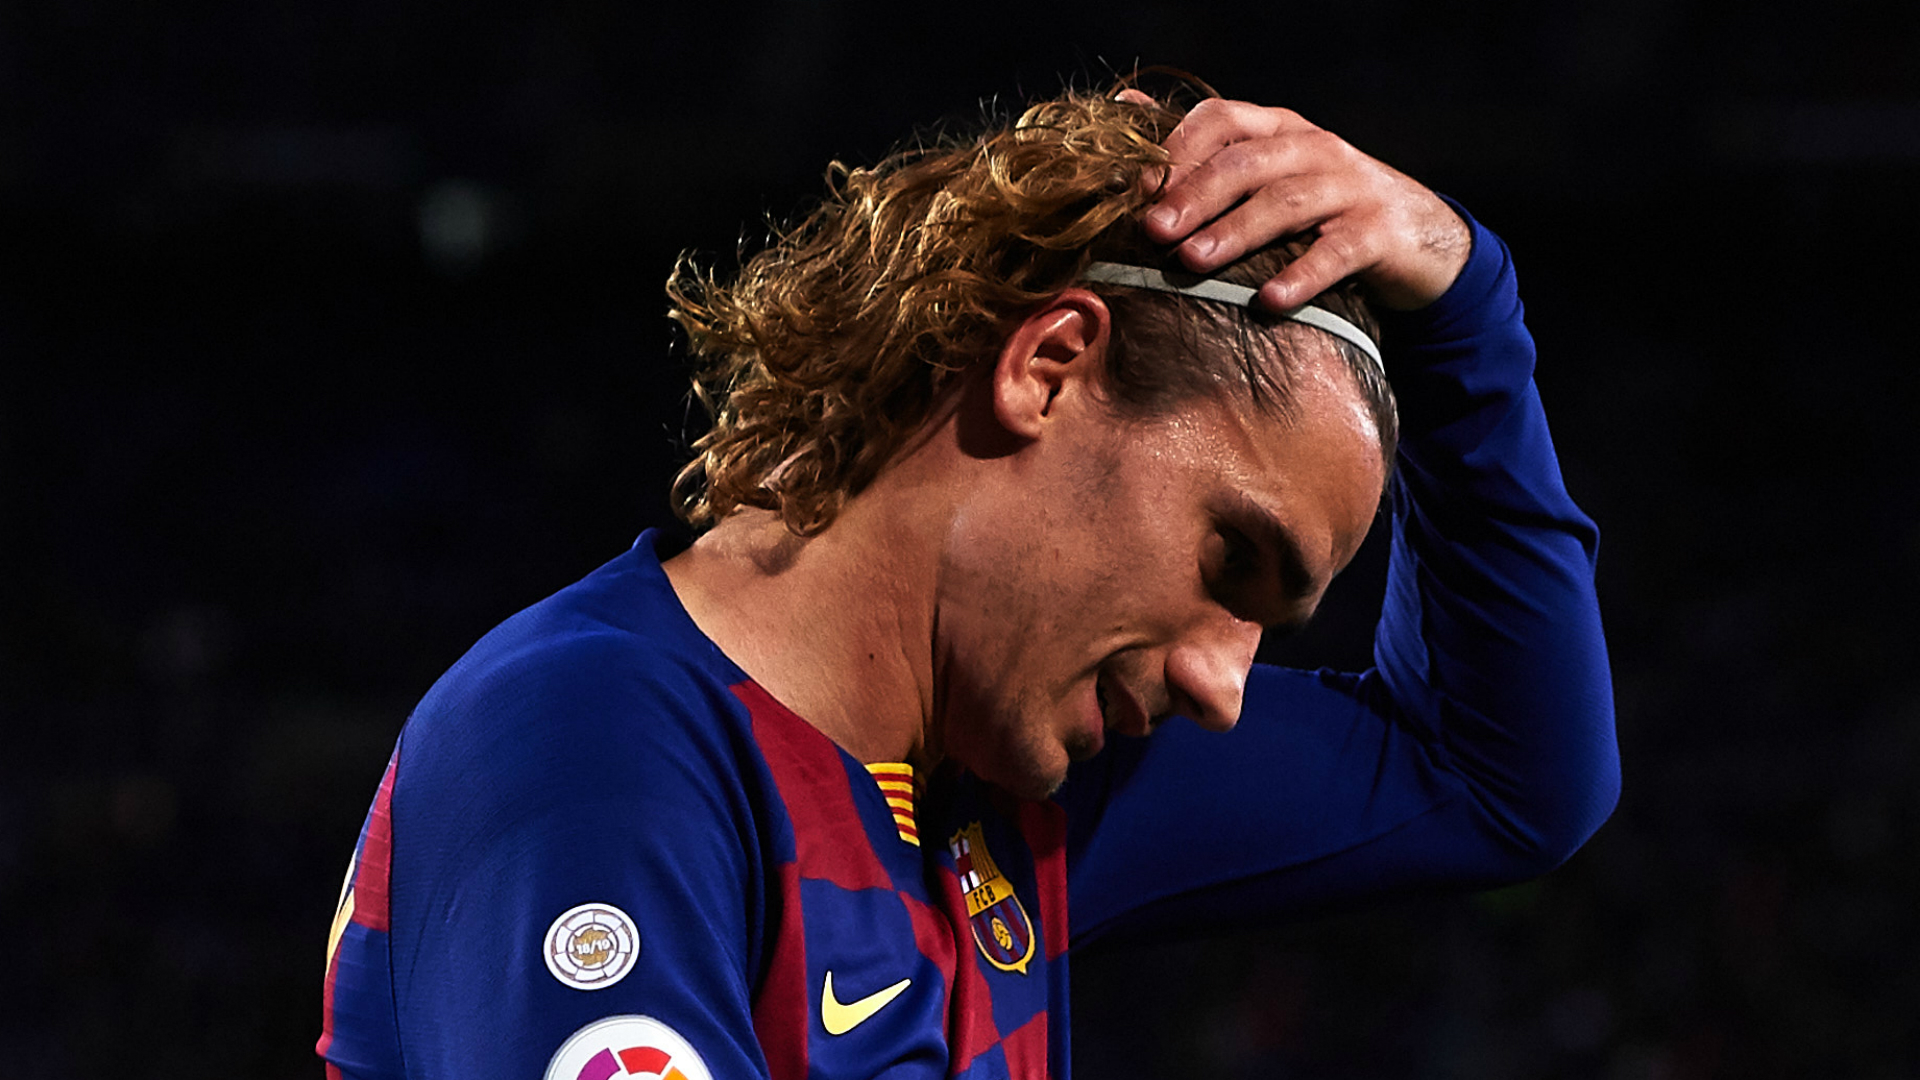 It's not simple to fit in at Barcelona - Lenglet backs 'happy' Griezmann to find his feet at Camp Nou